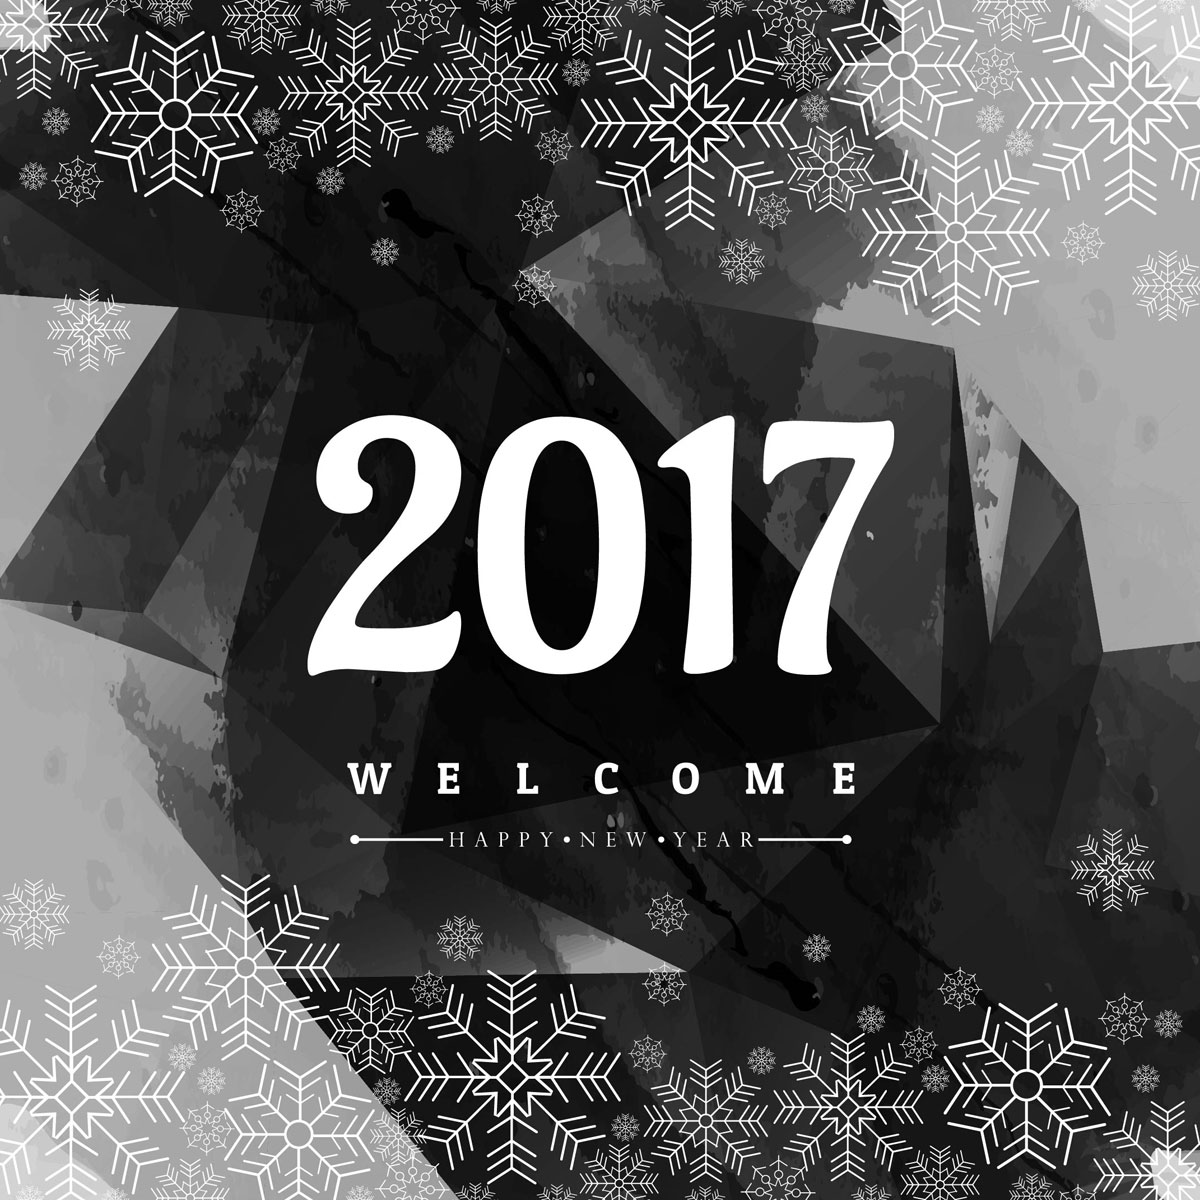 10 Best Happy New Year 2017 HD Wallpapers